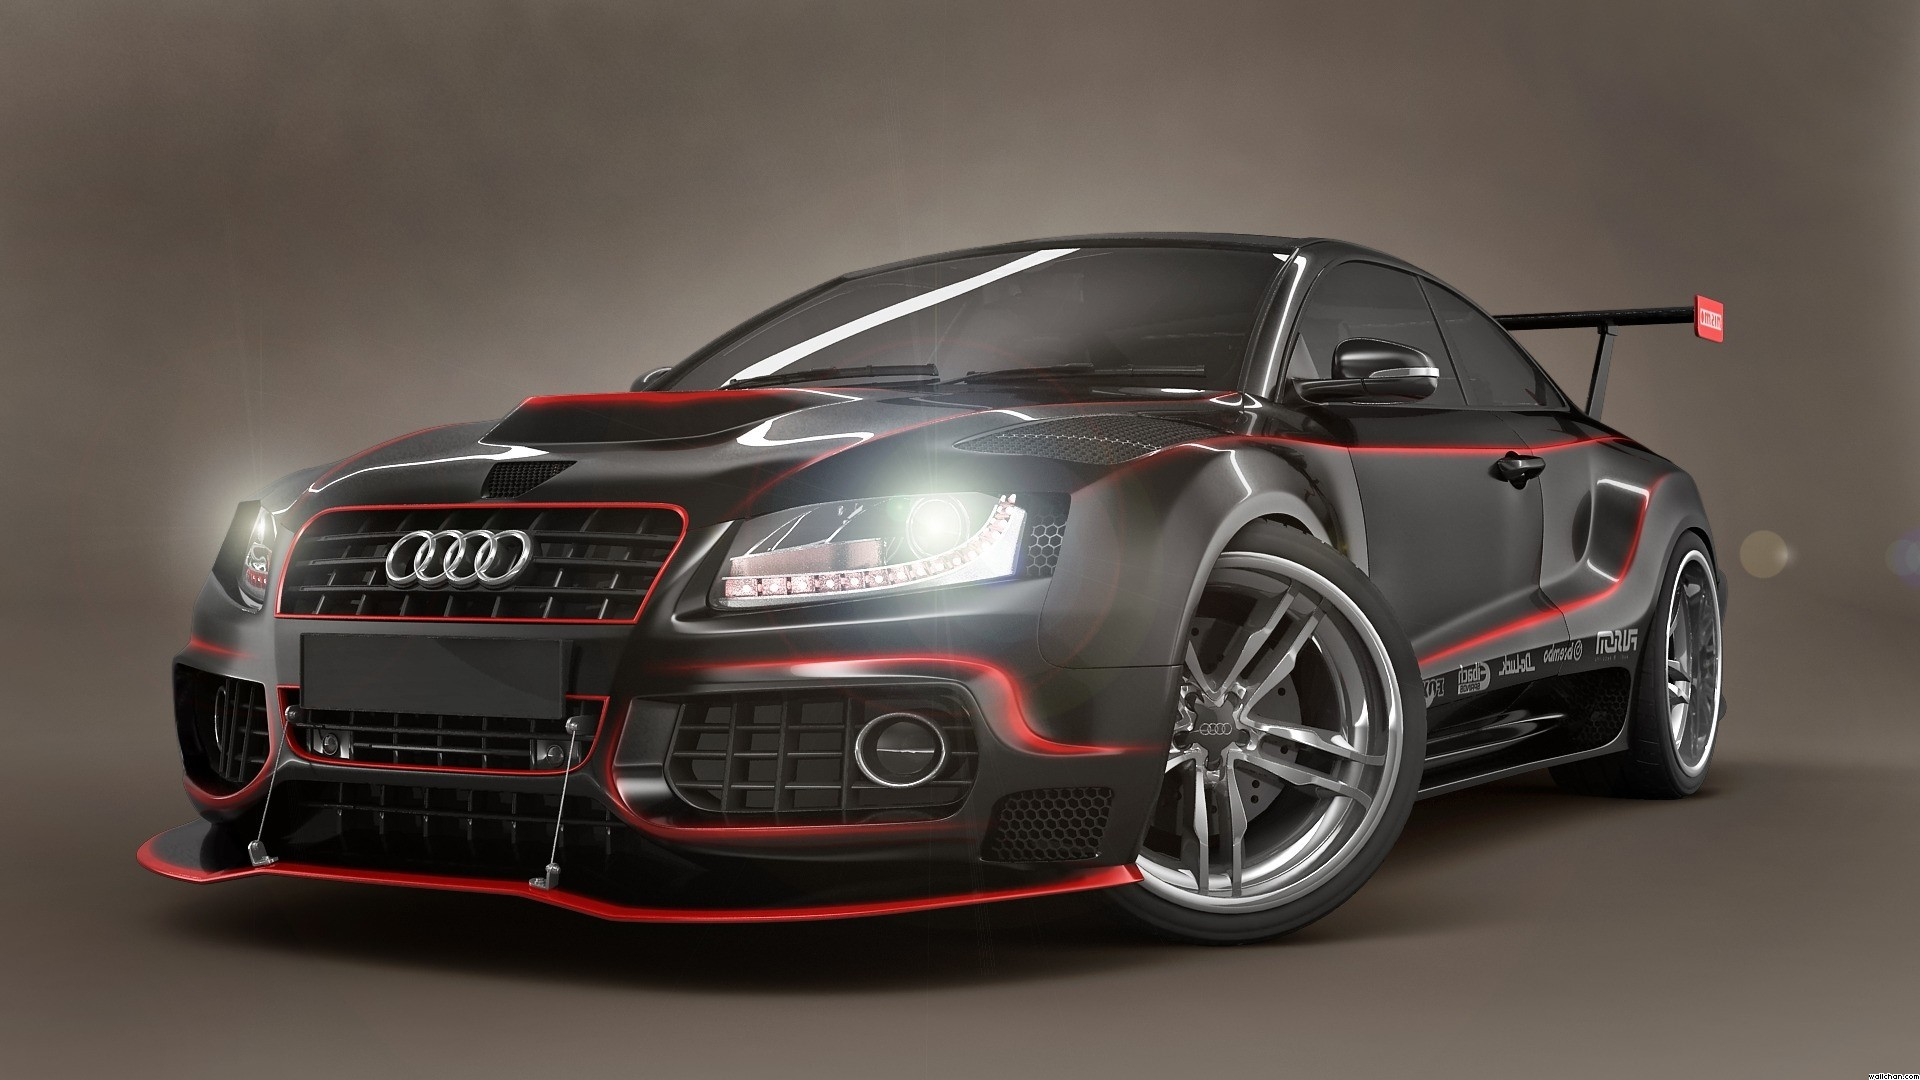 … Cool HD Audi Wallpapers For Free Download